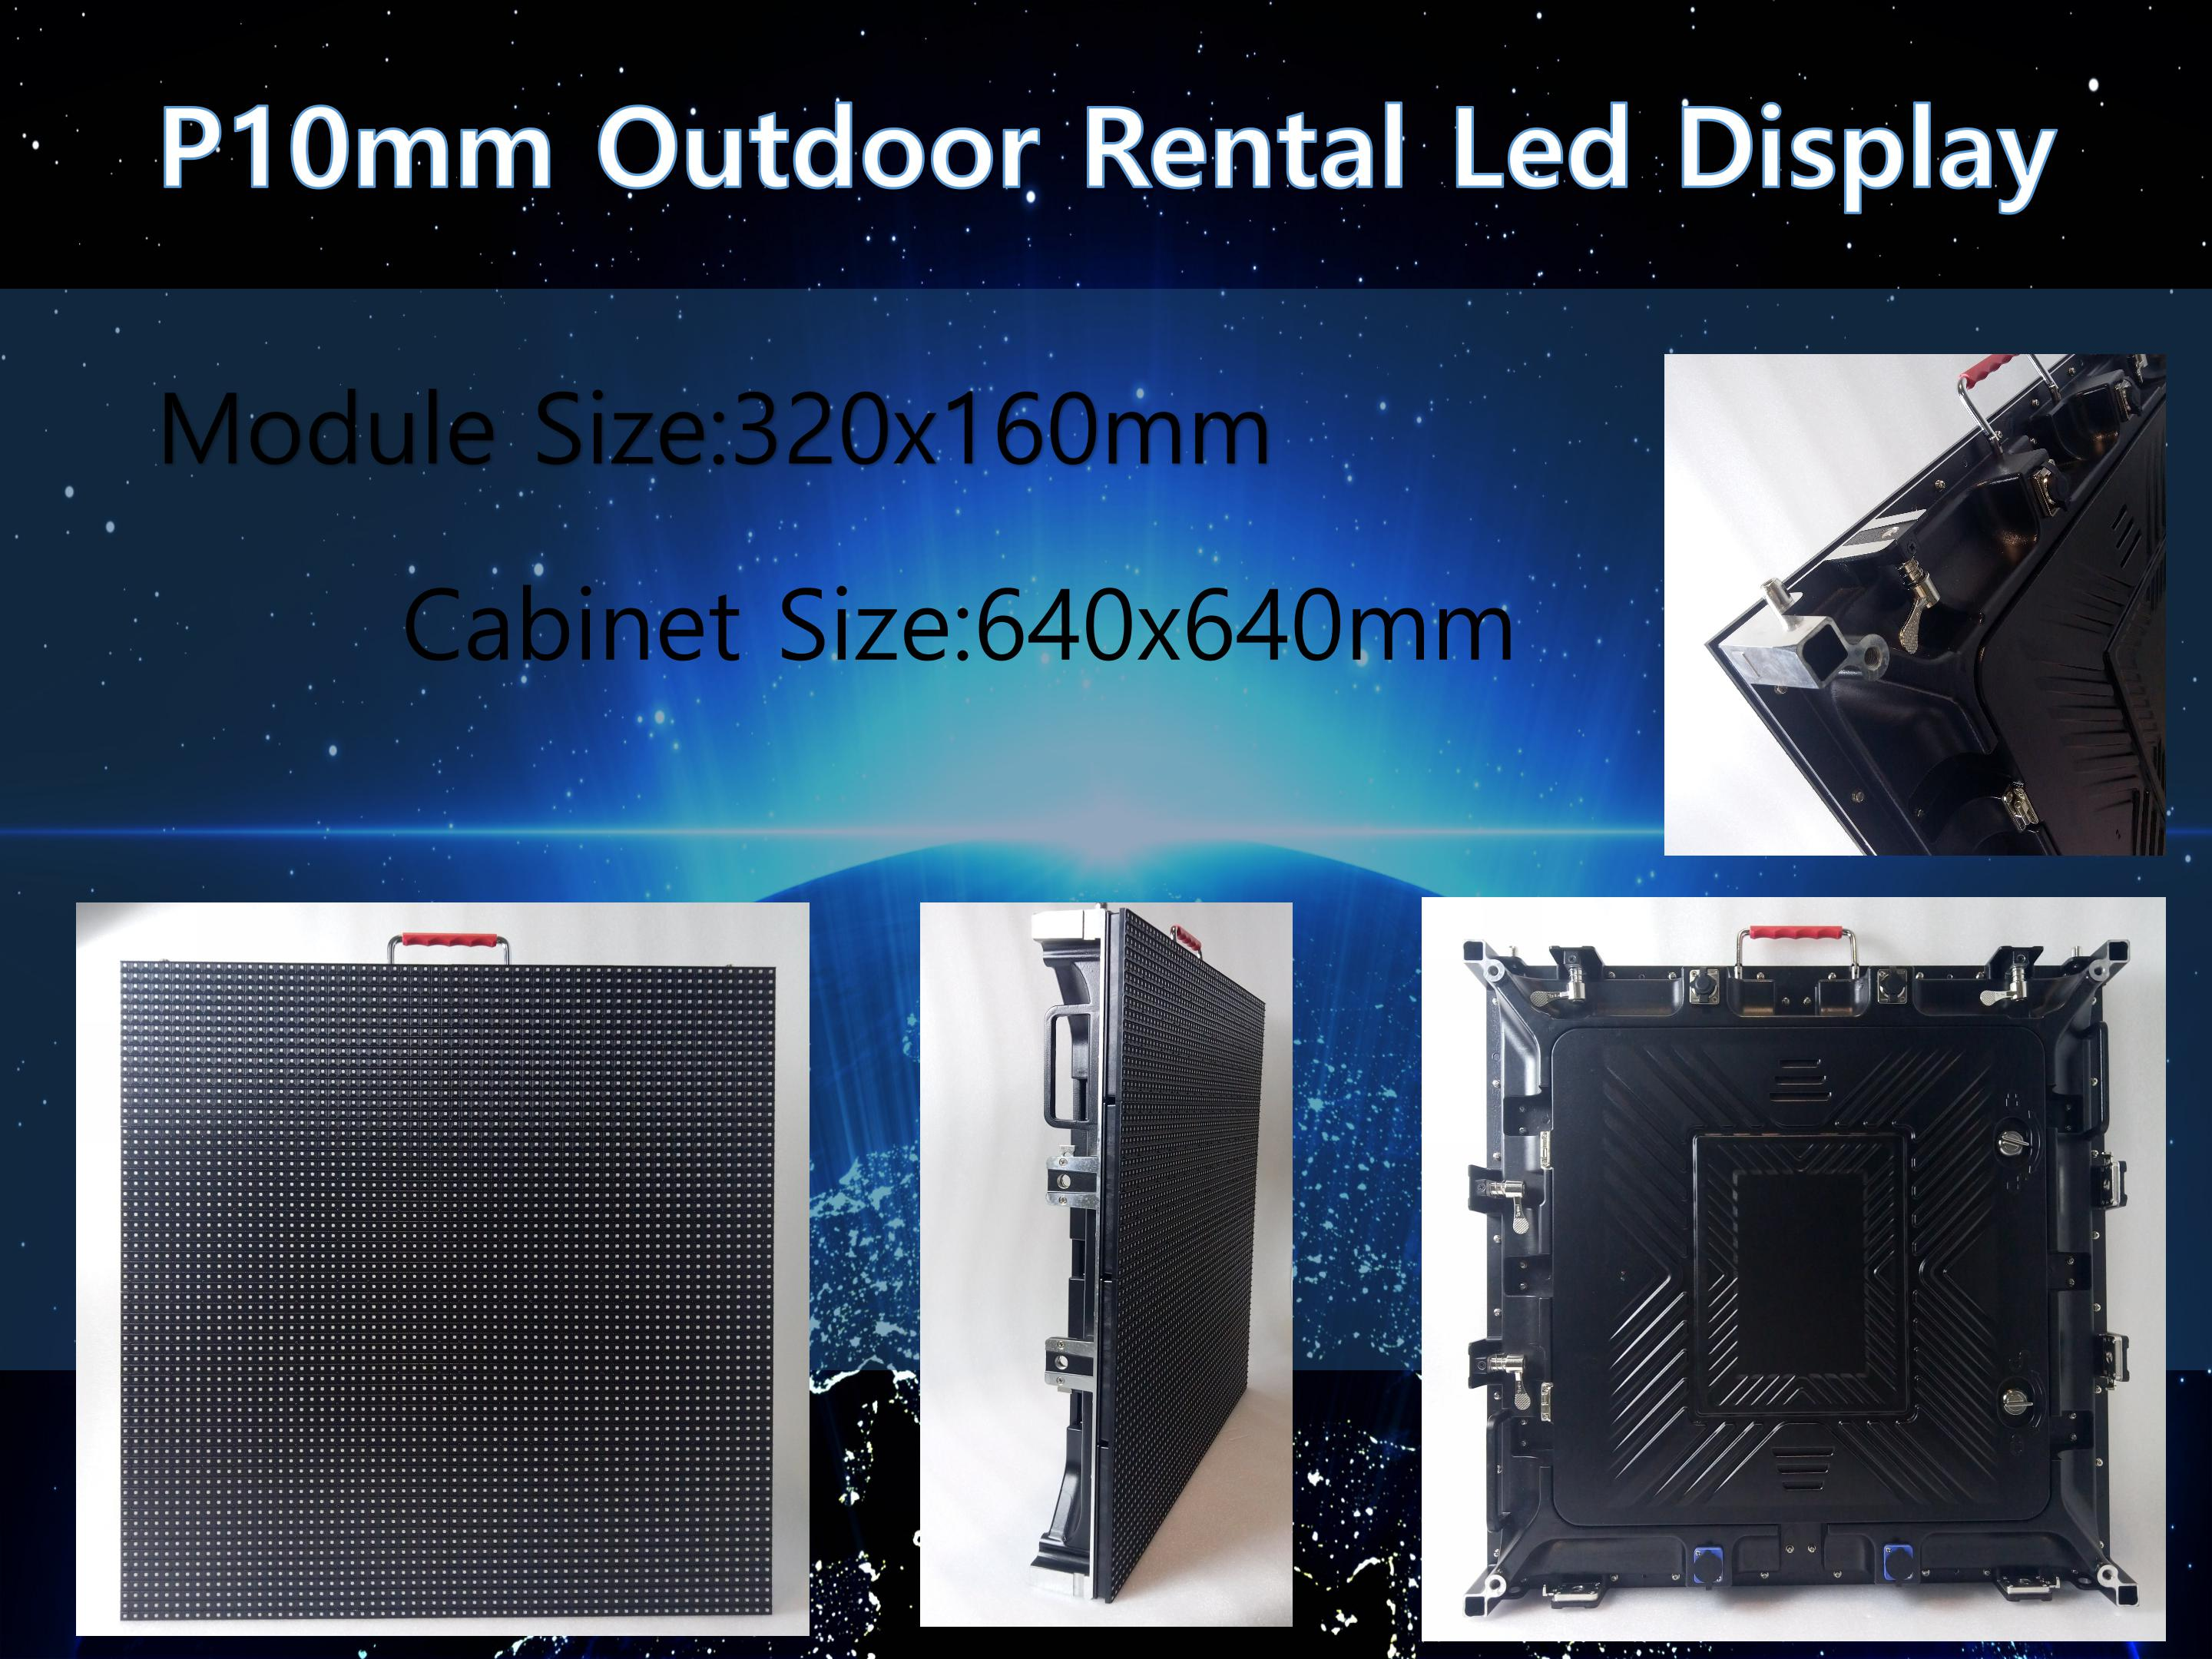 Outdoor rental smd hd p4 p5 p6 p8 p10 led screen led video wall for concert/event/show/party background